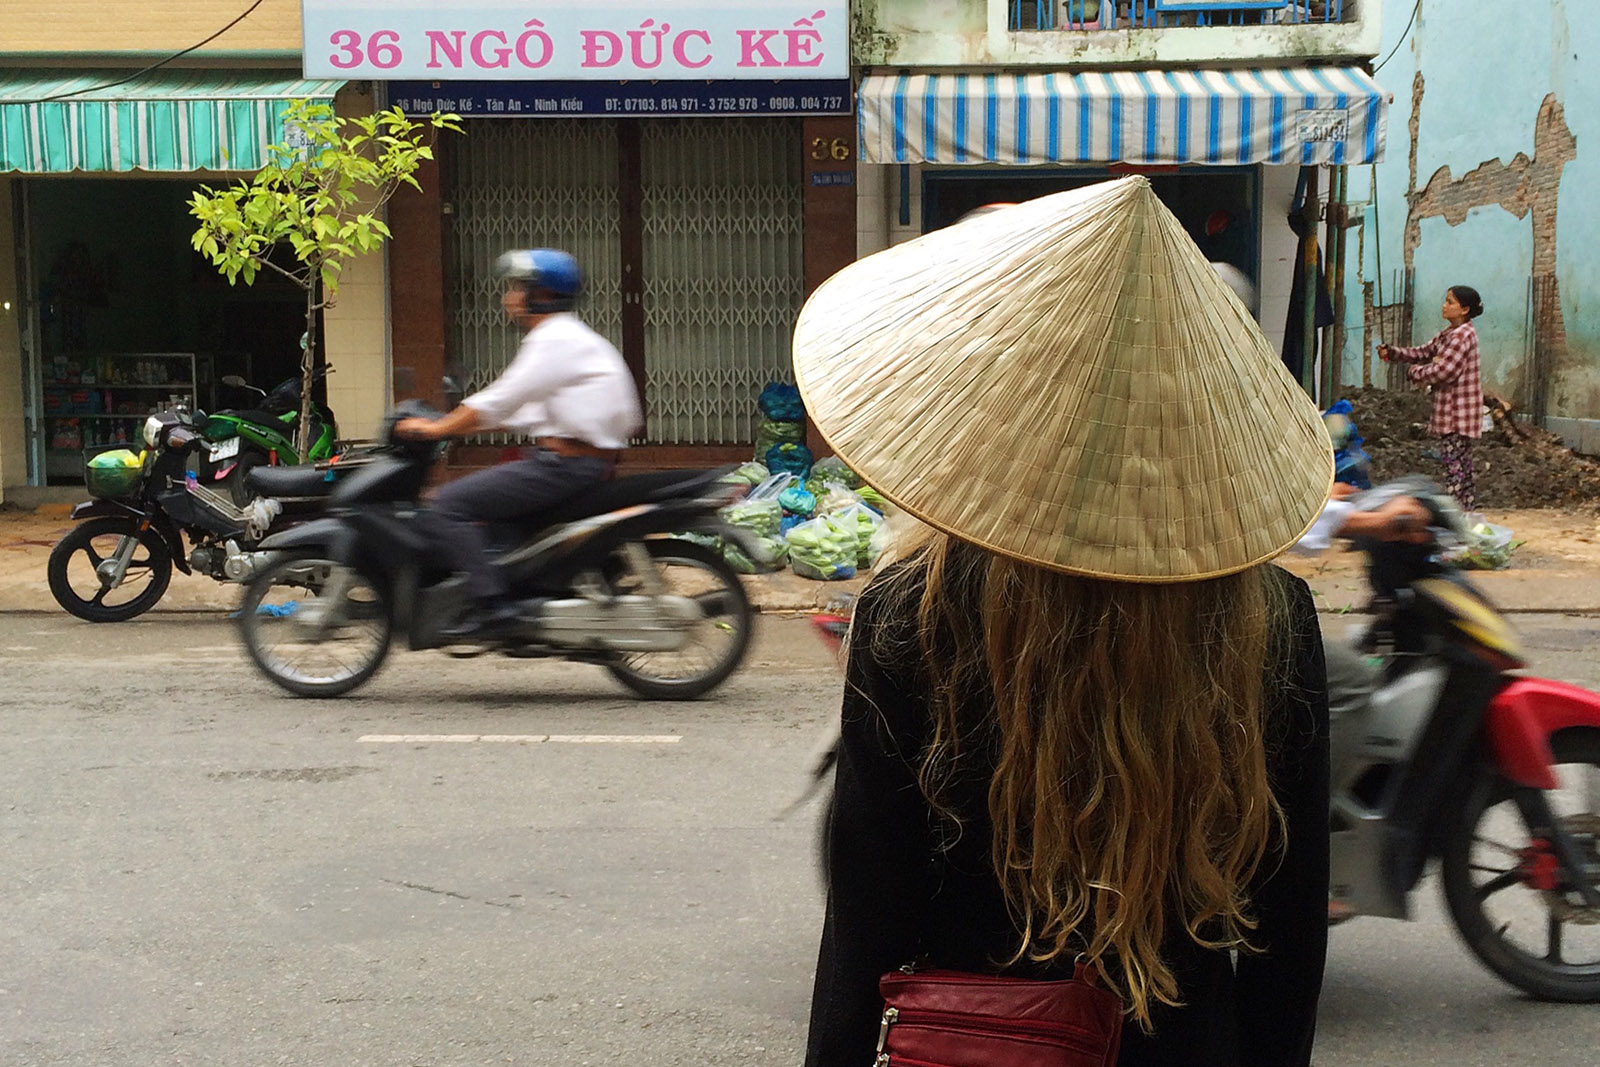 Our daughter Arkie taking in a street scene in Can Tho, Vietnam